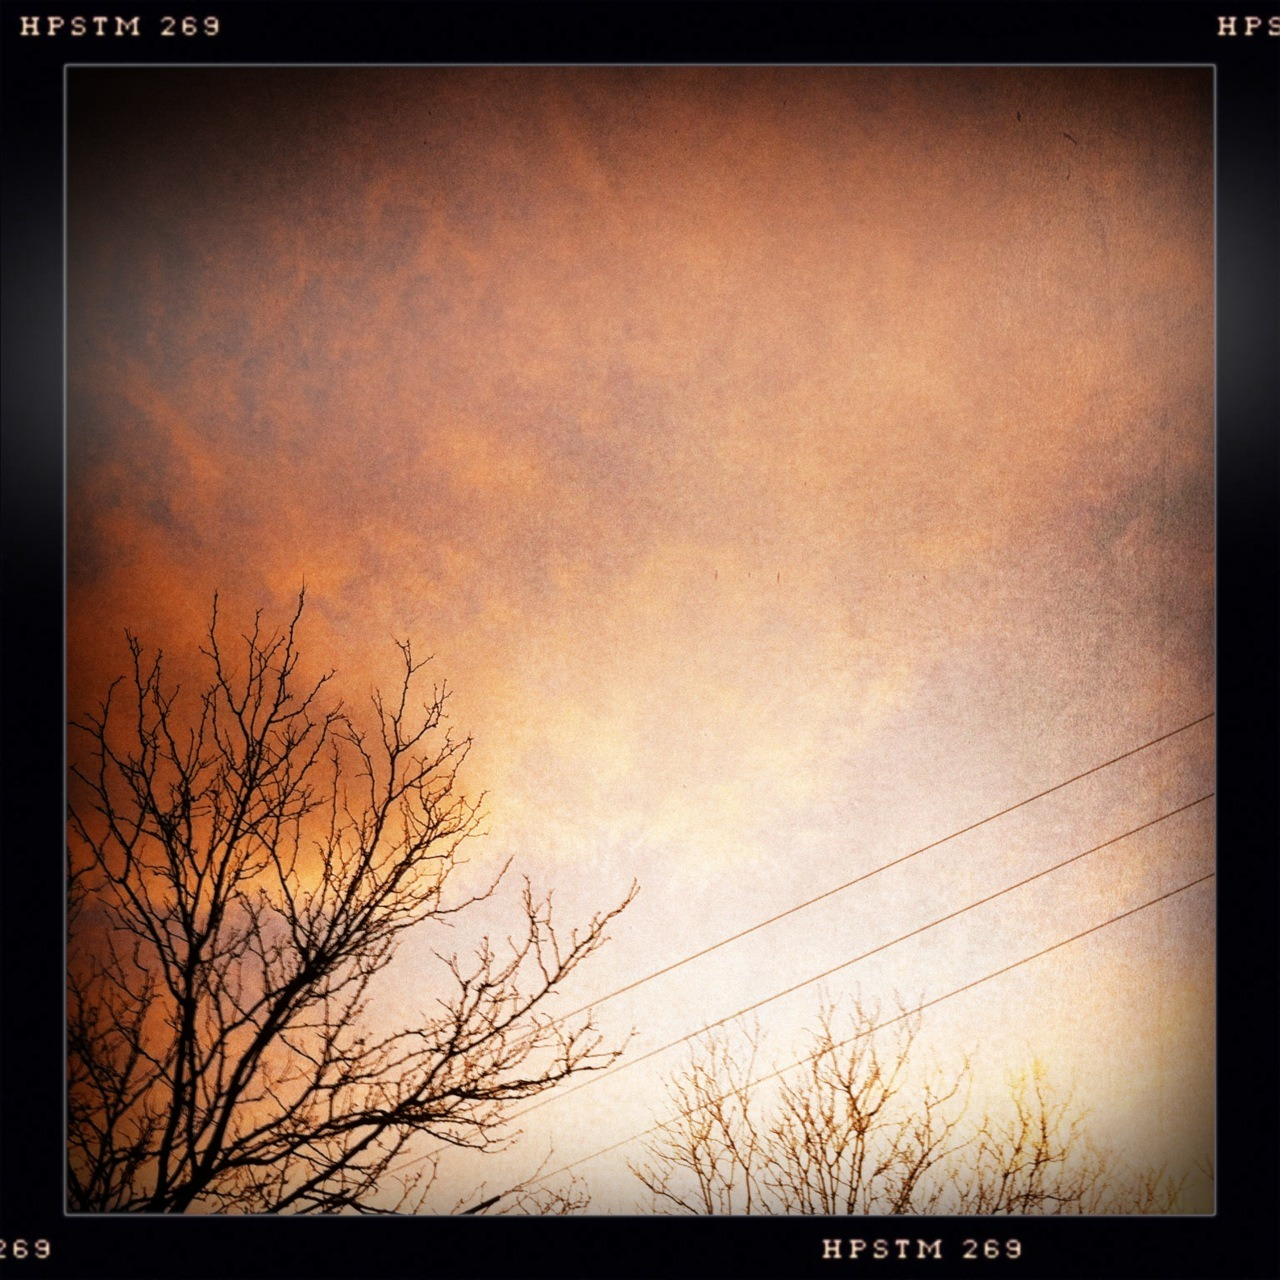 The Sky's on Fire I Taken with Hipstamatic, Libatique 73 Lens, Pistil Film, No Flash.